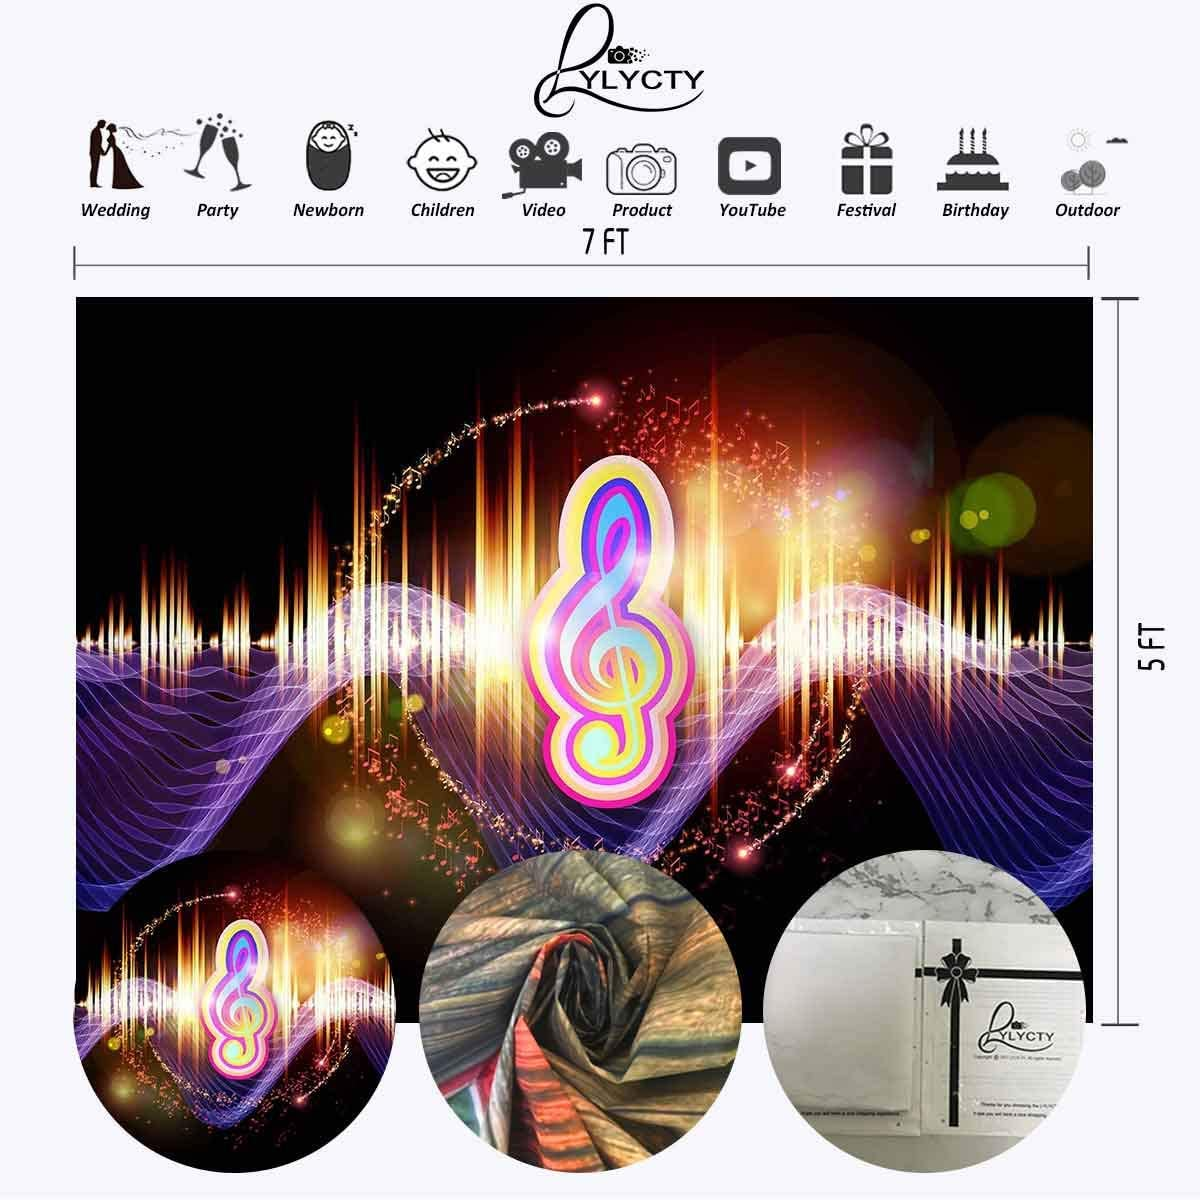 6x4ft Vinyl Dynamic Music Symbol Background Dazzle Color Background for Music Theme Party Decoration Banner Features Personal Portrait Background LYLS851 for Party Decoration Birthday YouTube Videos S